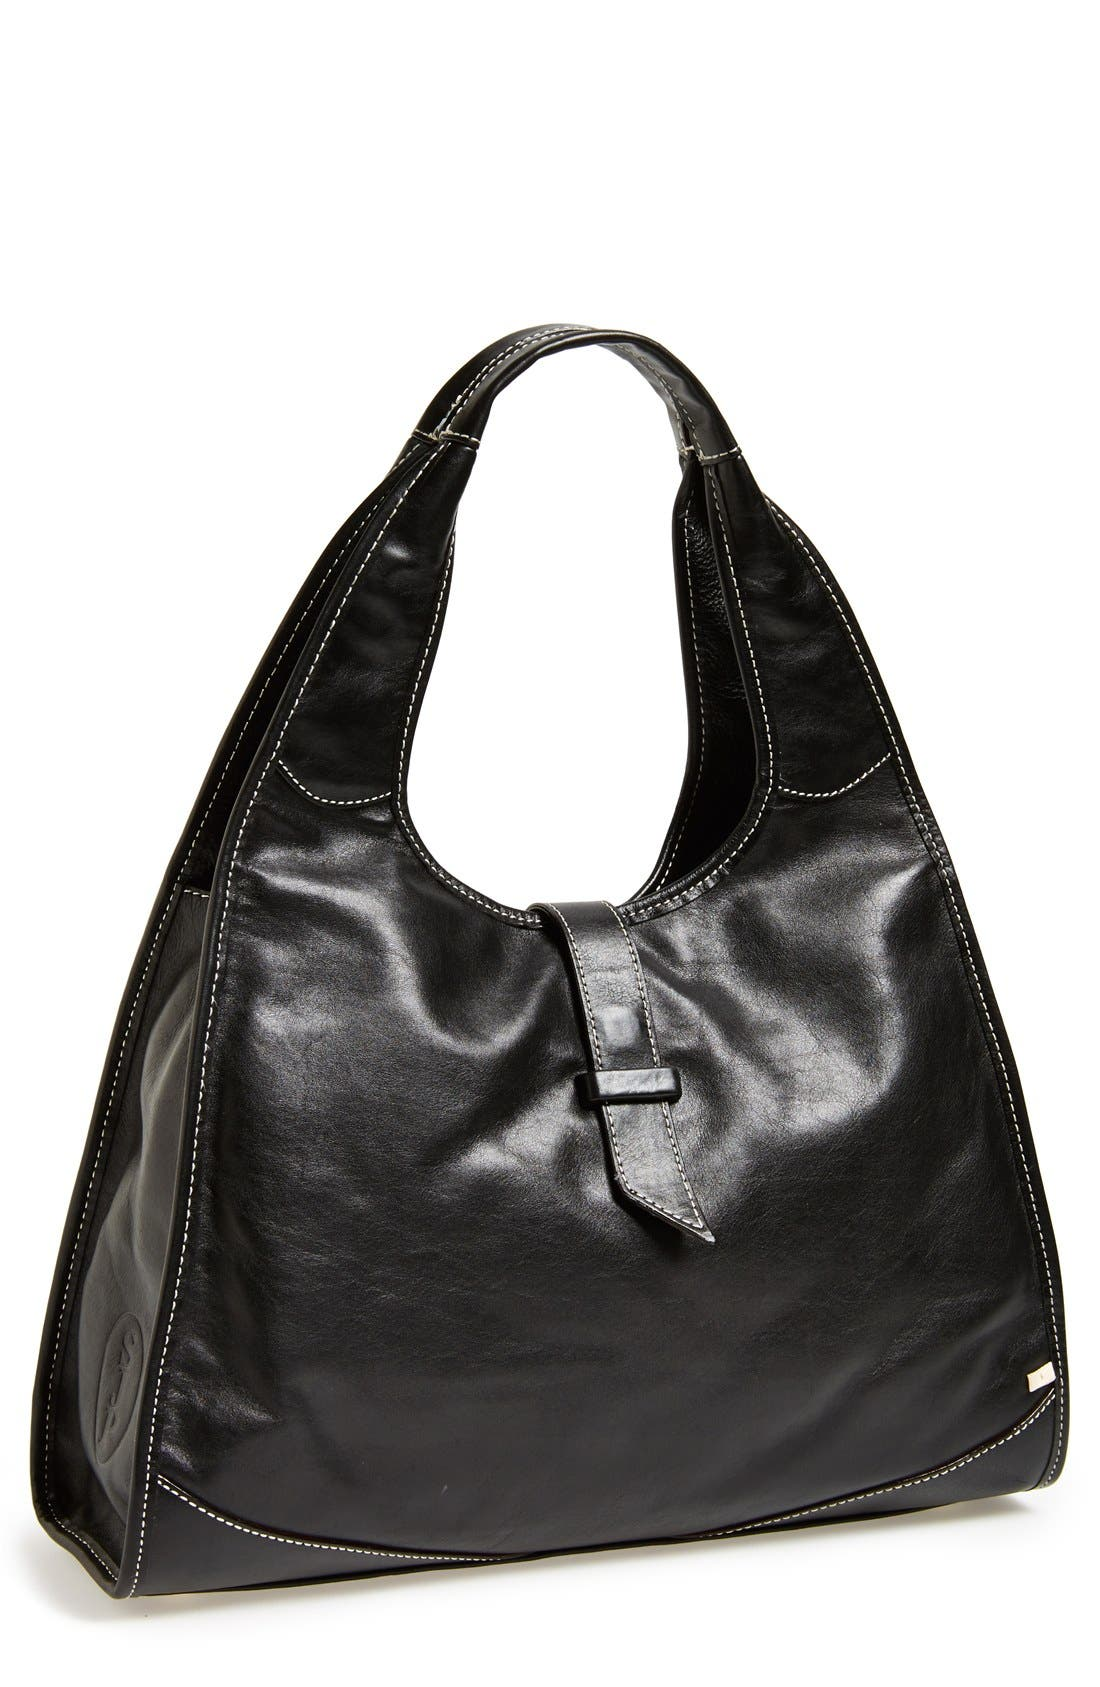 SJP BY SARAH JESSICA PARKER 'New Yorker' Leather Hobo, Main, color, 001